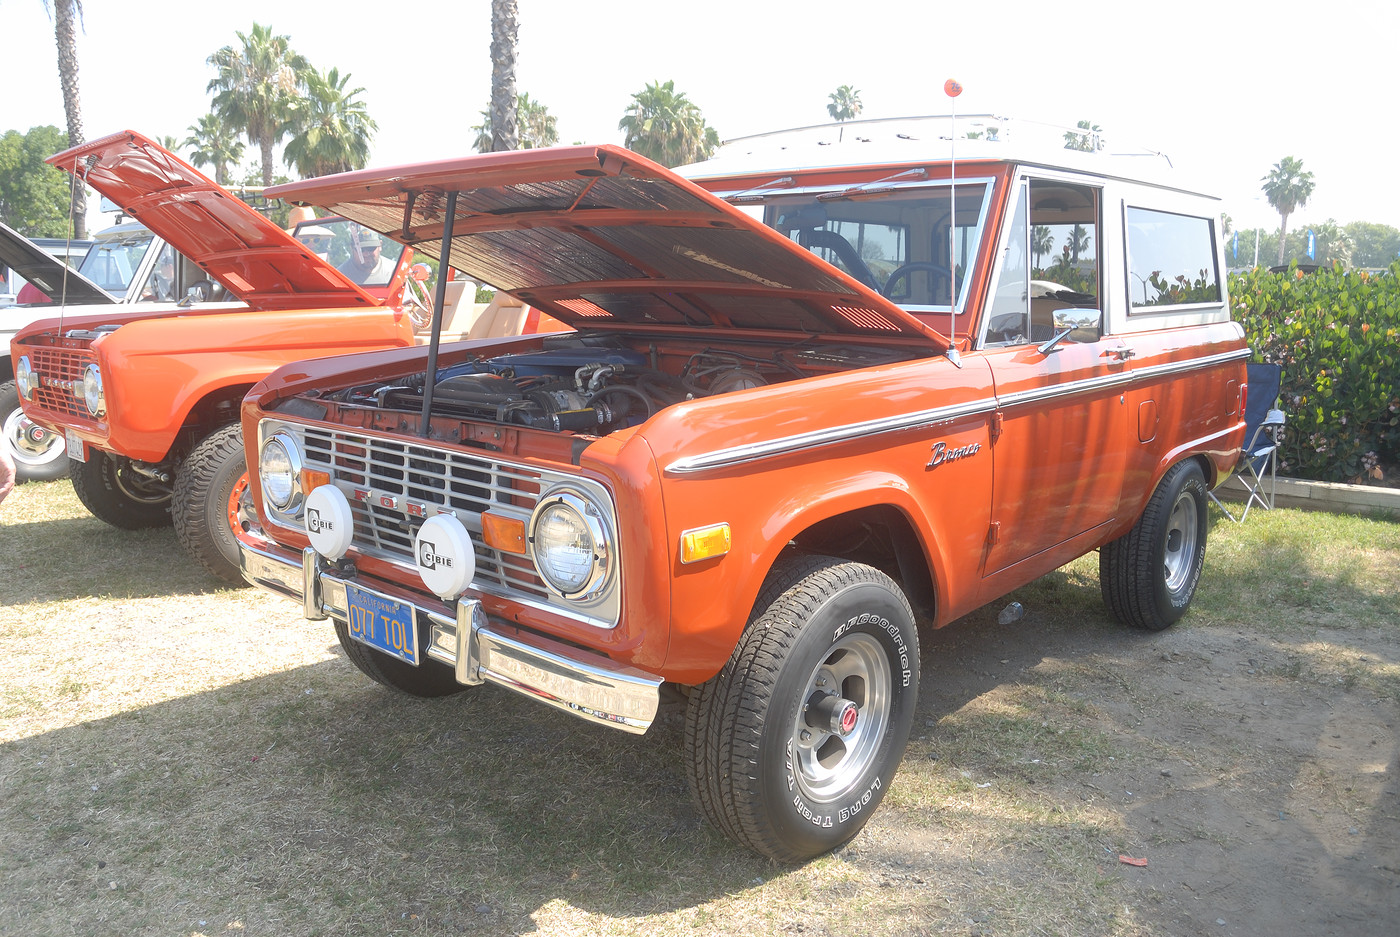 1977 Ford Bronco owned by Harvey Mushman DSC 4852